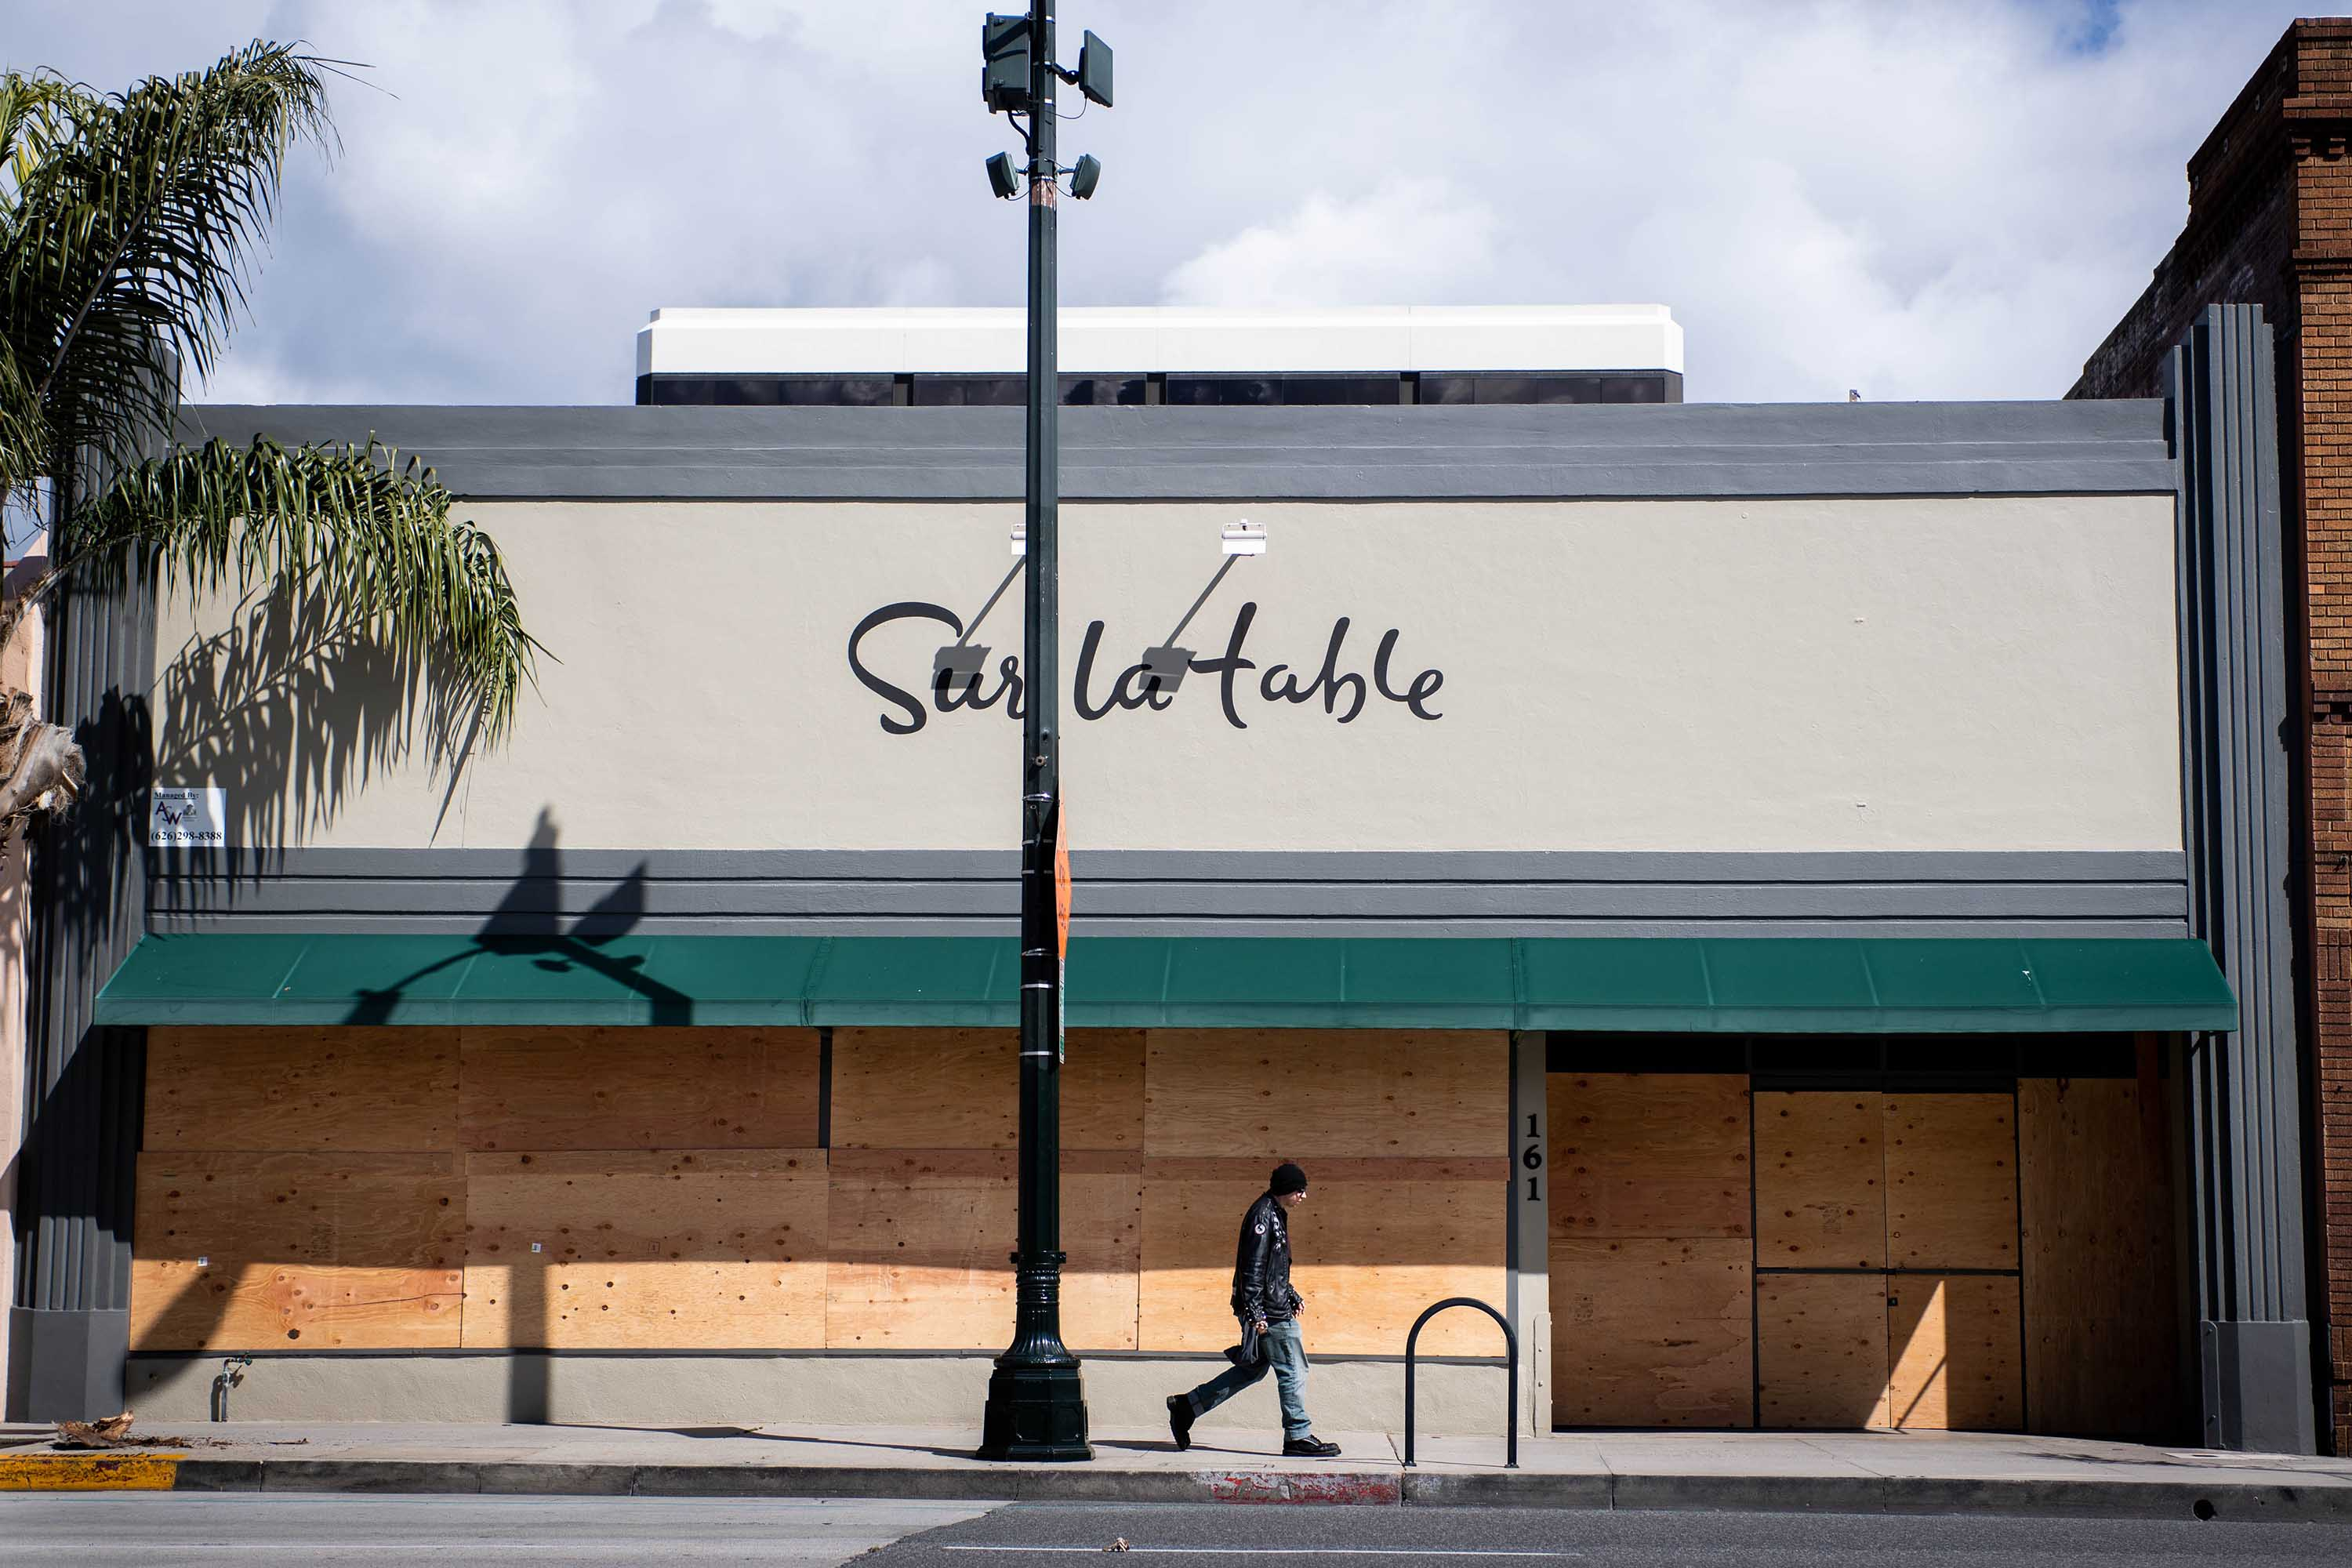 A pedestrian passes a boarded up Sur La Table retail space in Pasadena, California, on March 23.